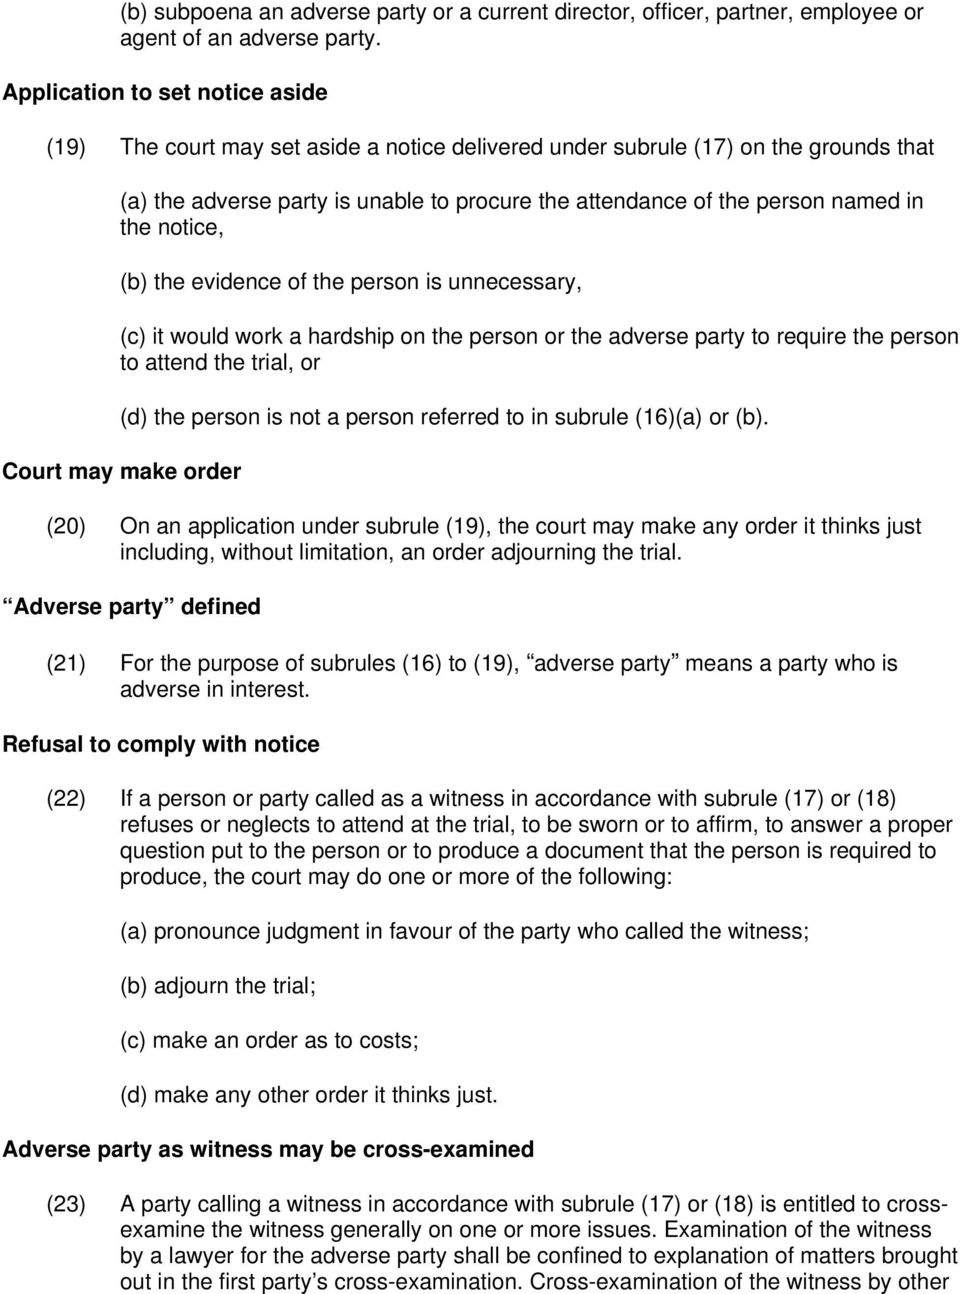 the notice, (b) the evidence of the person is unnecessary, (c) it would work a hardship on the person or the adverse party to require the person to attend the trial, or (d) the person is not a person